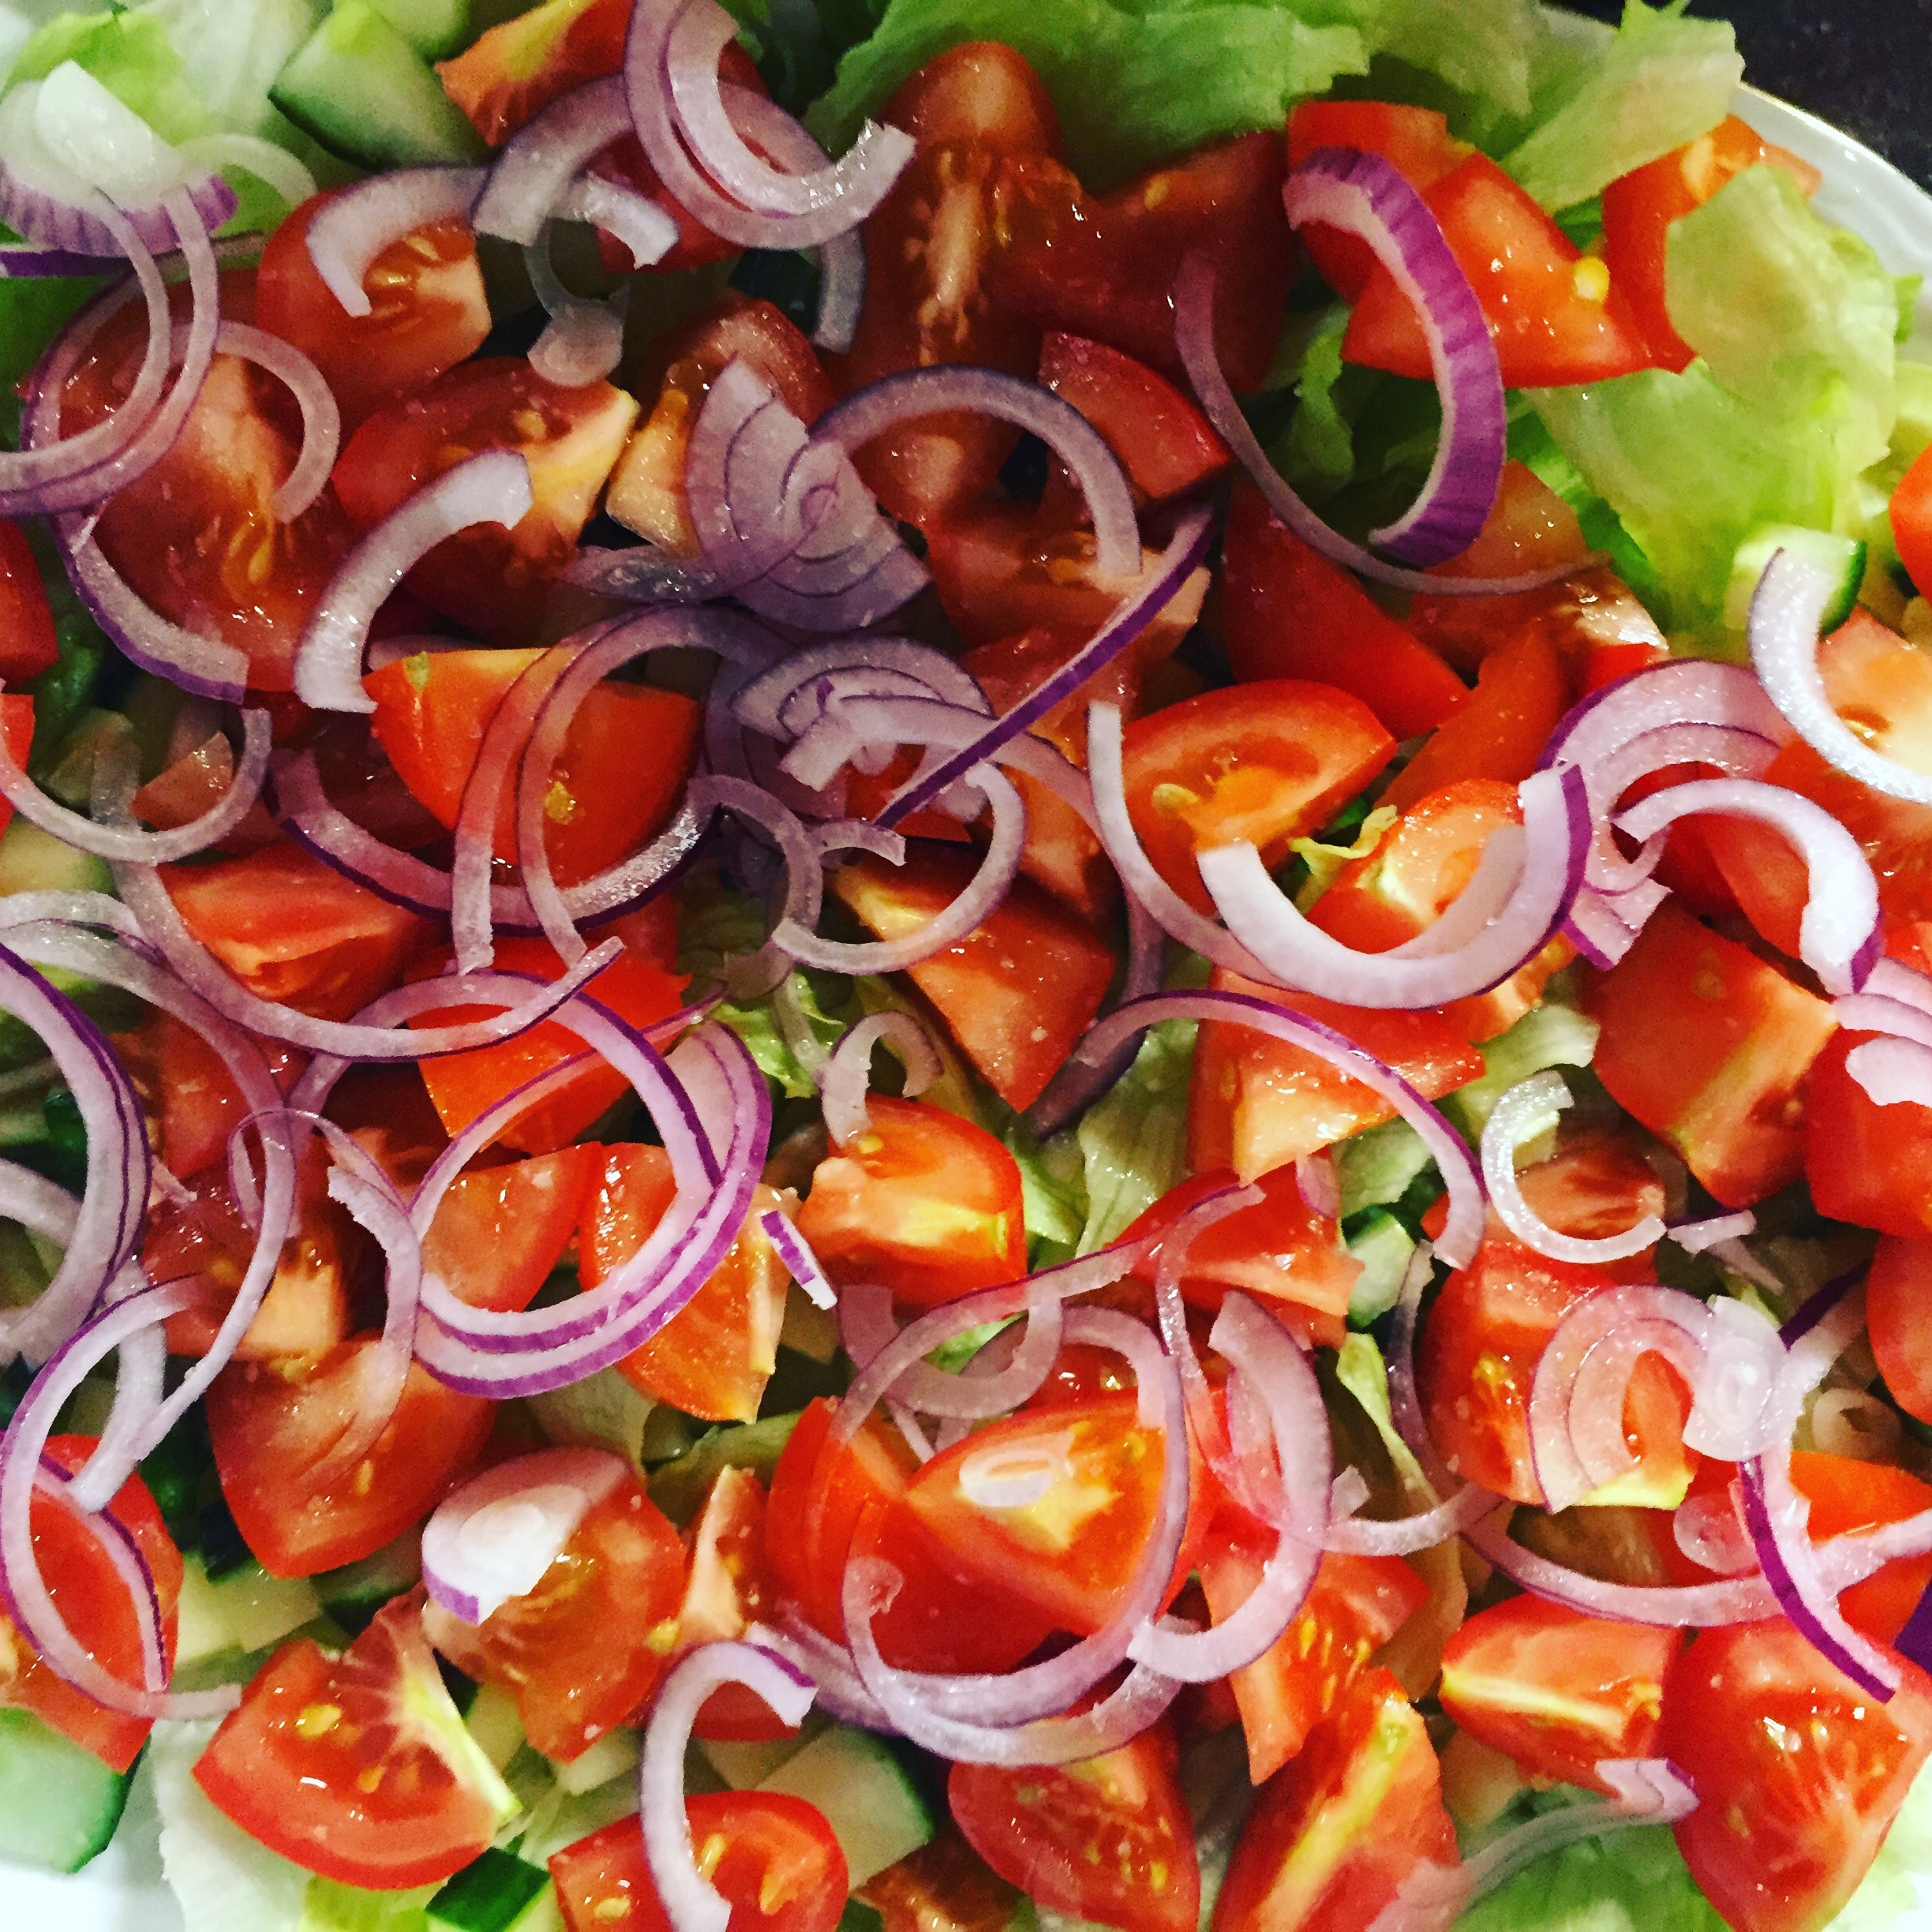 Salad with tomatoes and onions.